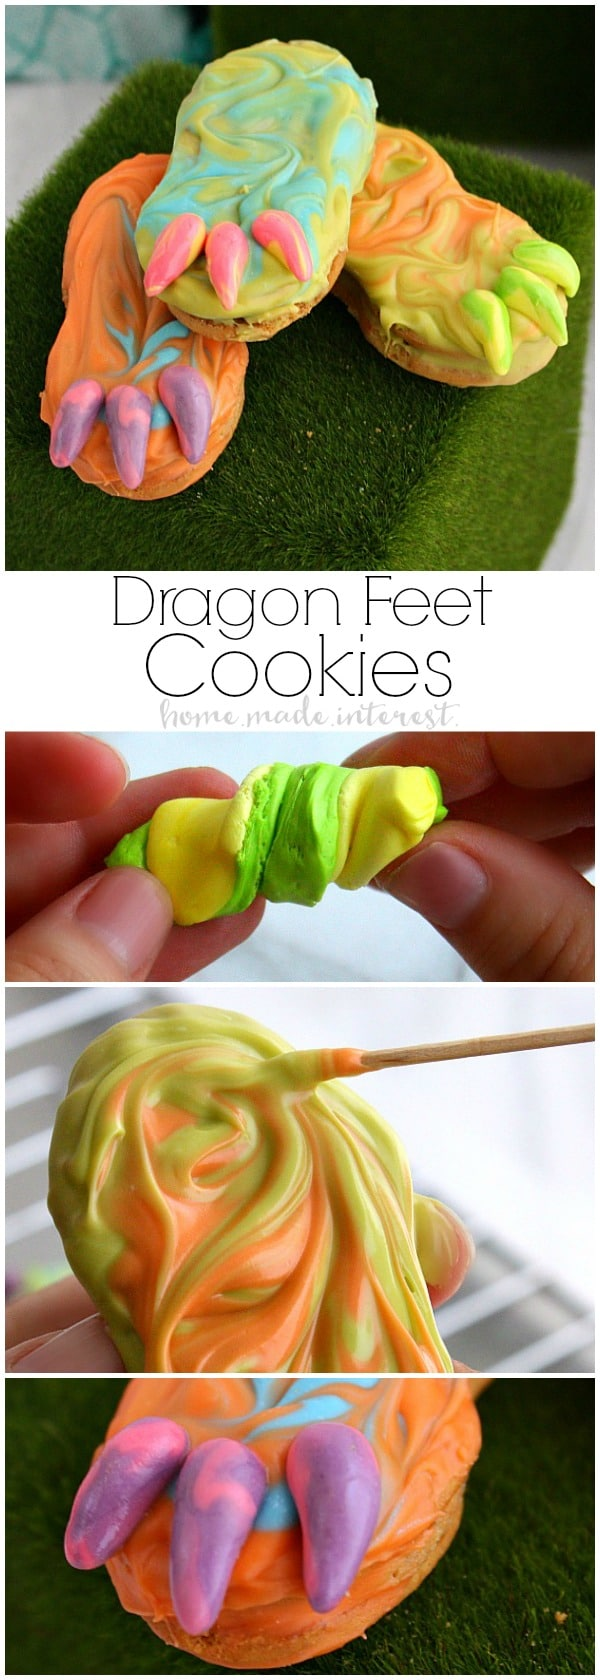 These fun and imaginative Dragon Feet Cookies are an easy dessert recipe for Halloween or a dragon birthday party. These dragon feet are made out of nutter butter cookies coated in multi colored candy melts. I made them for a Pete's Dragon party everyone loved them. I think they'd make awesome monster feet for a Halloween party!